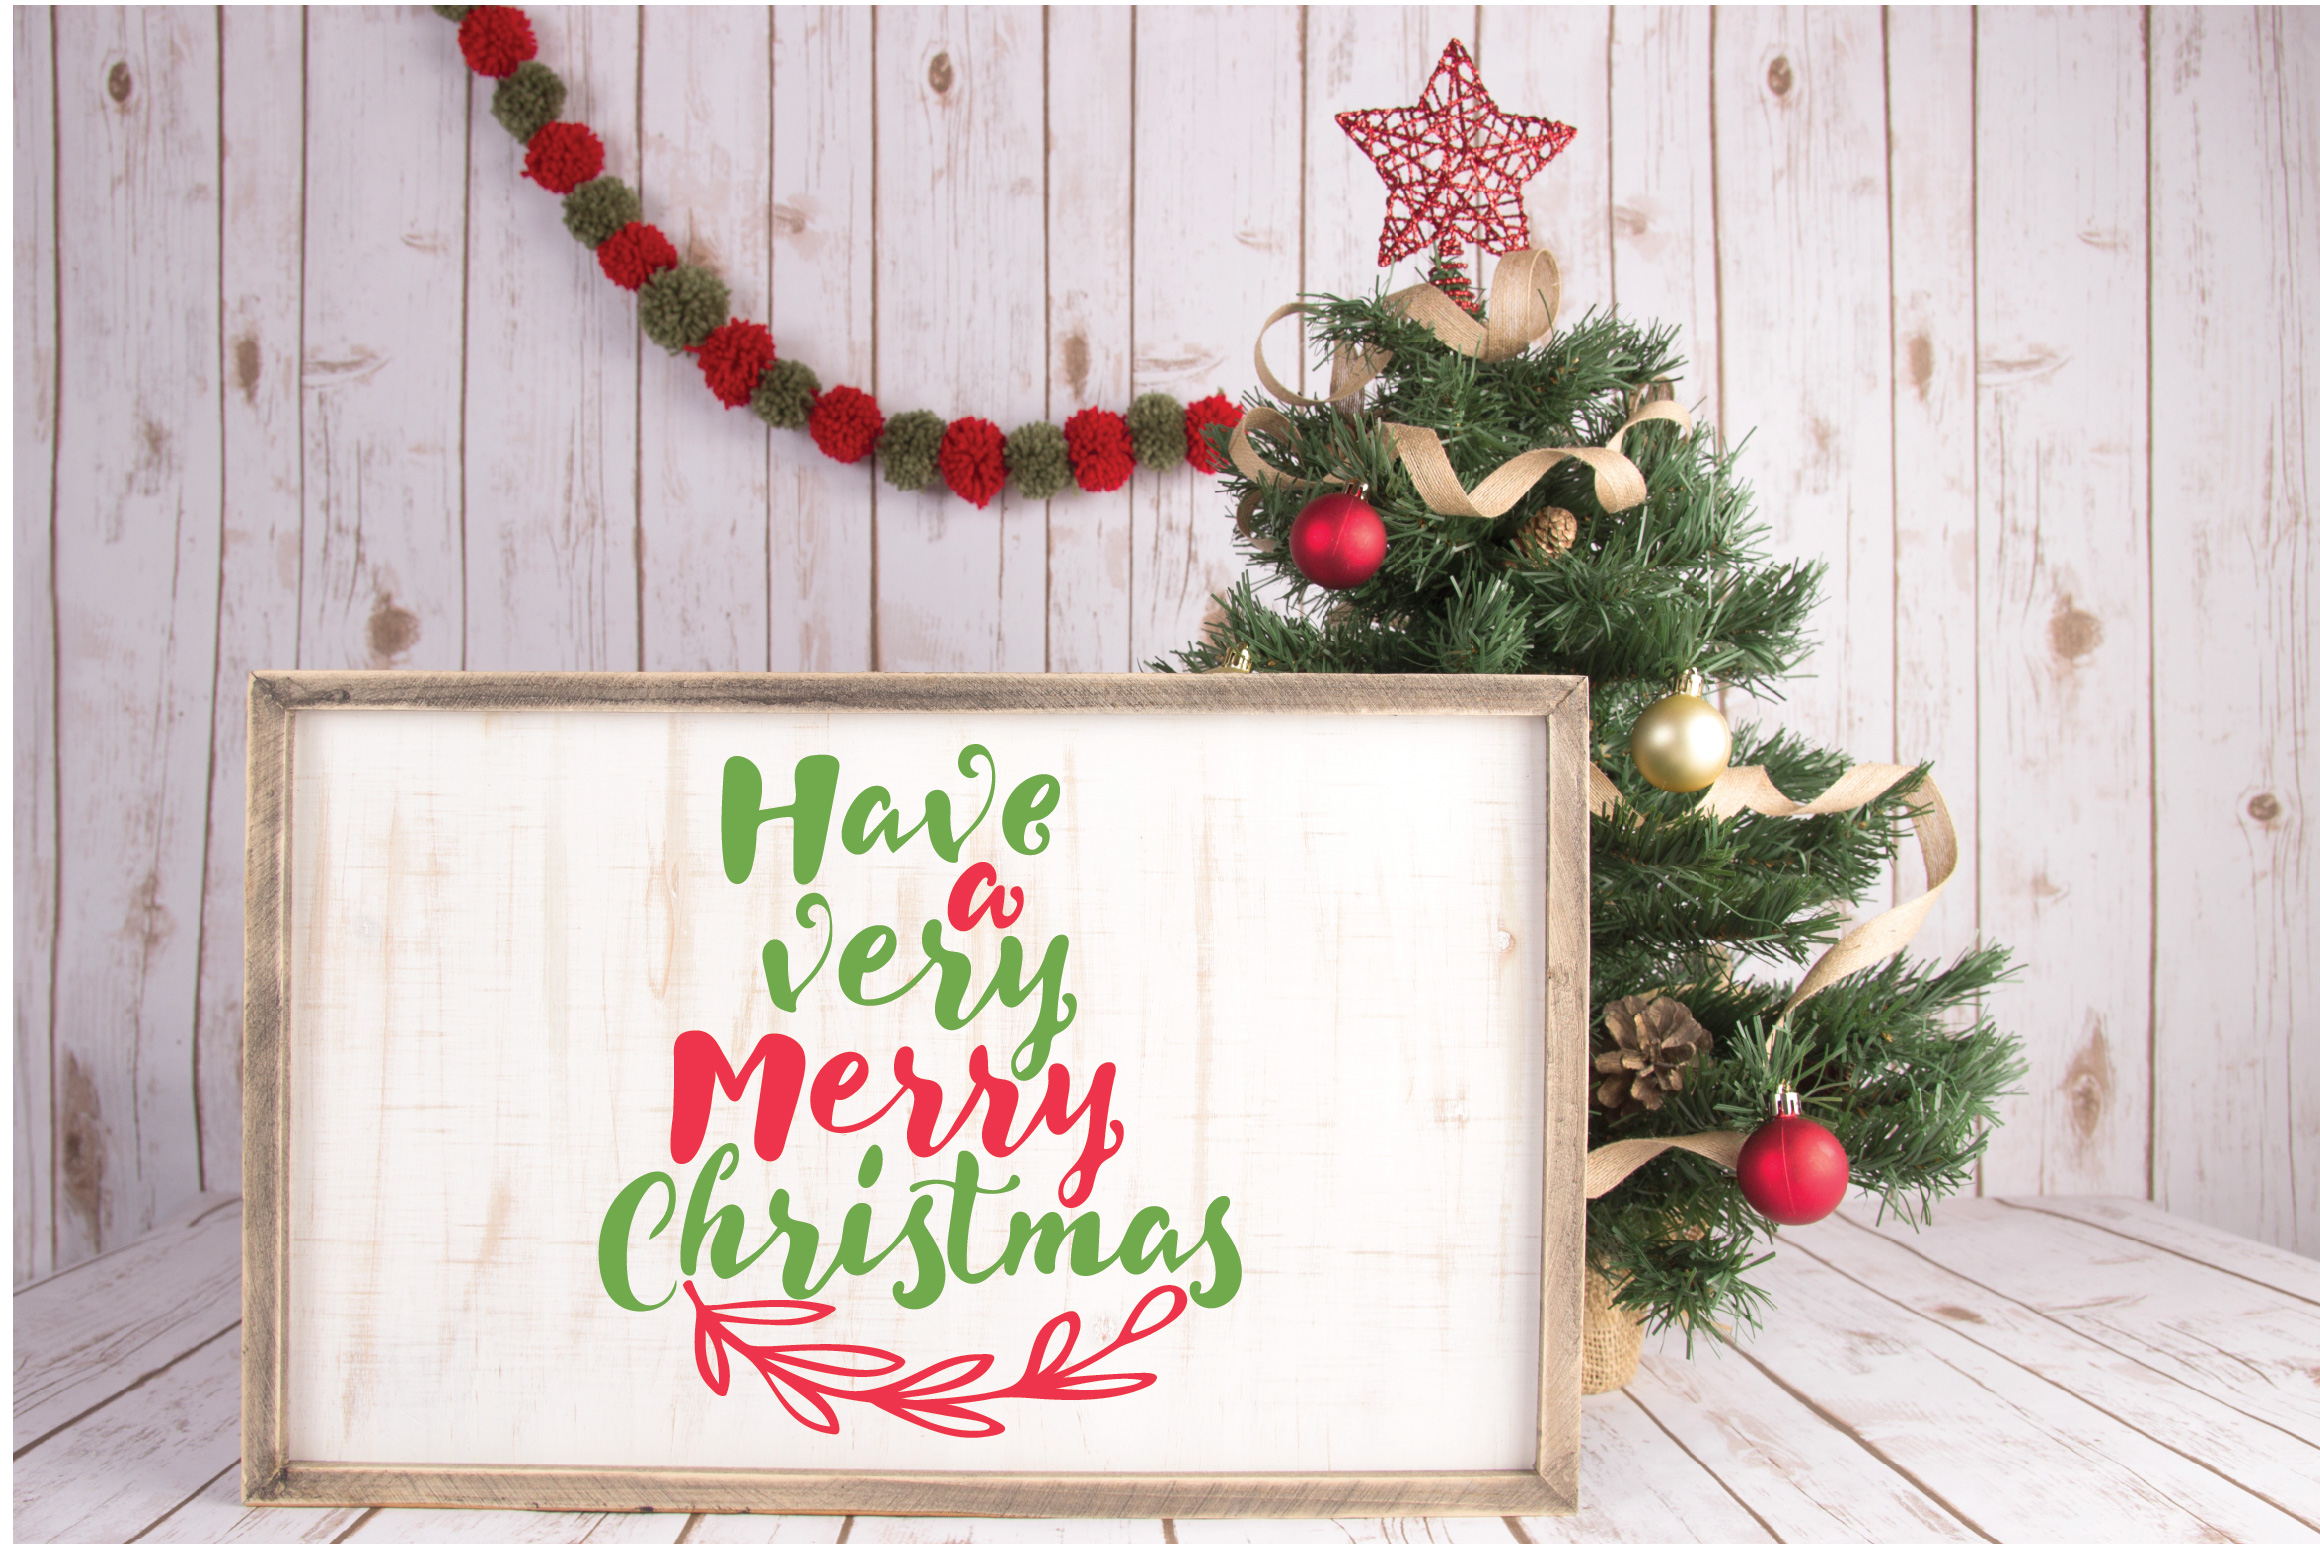 Have a Very Merry Christmas SVG Cut File - Christmas EPS DXF example image 3